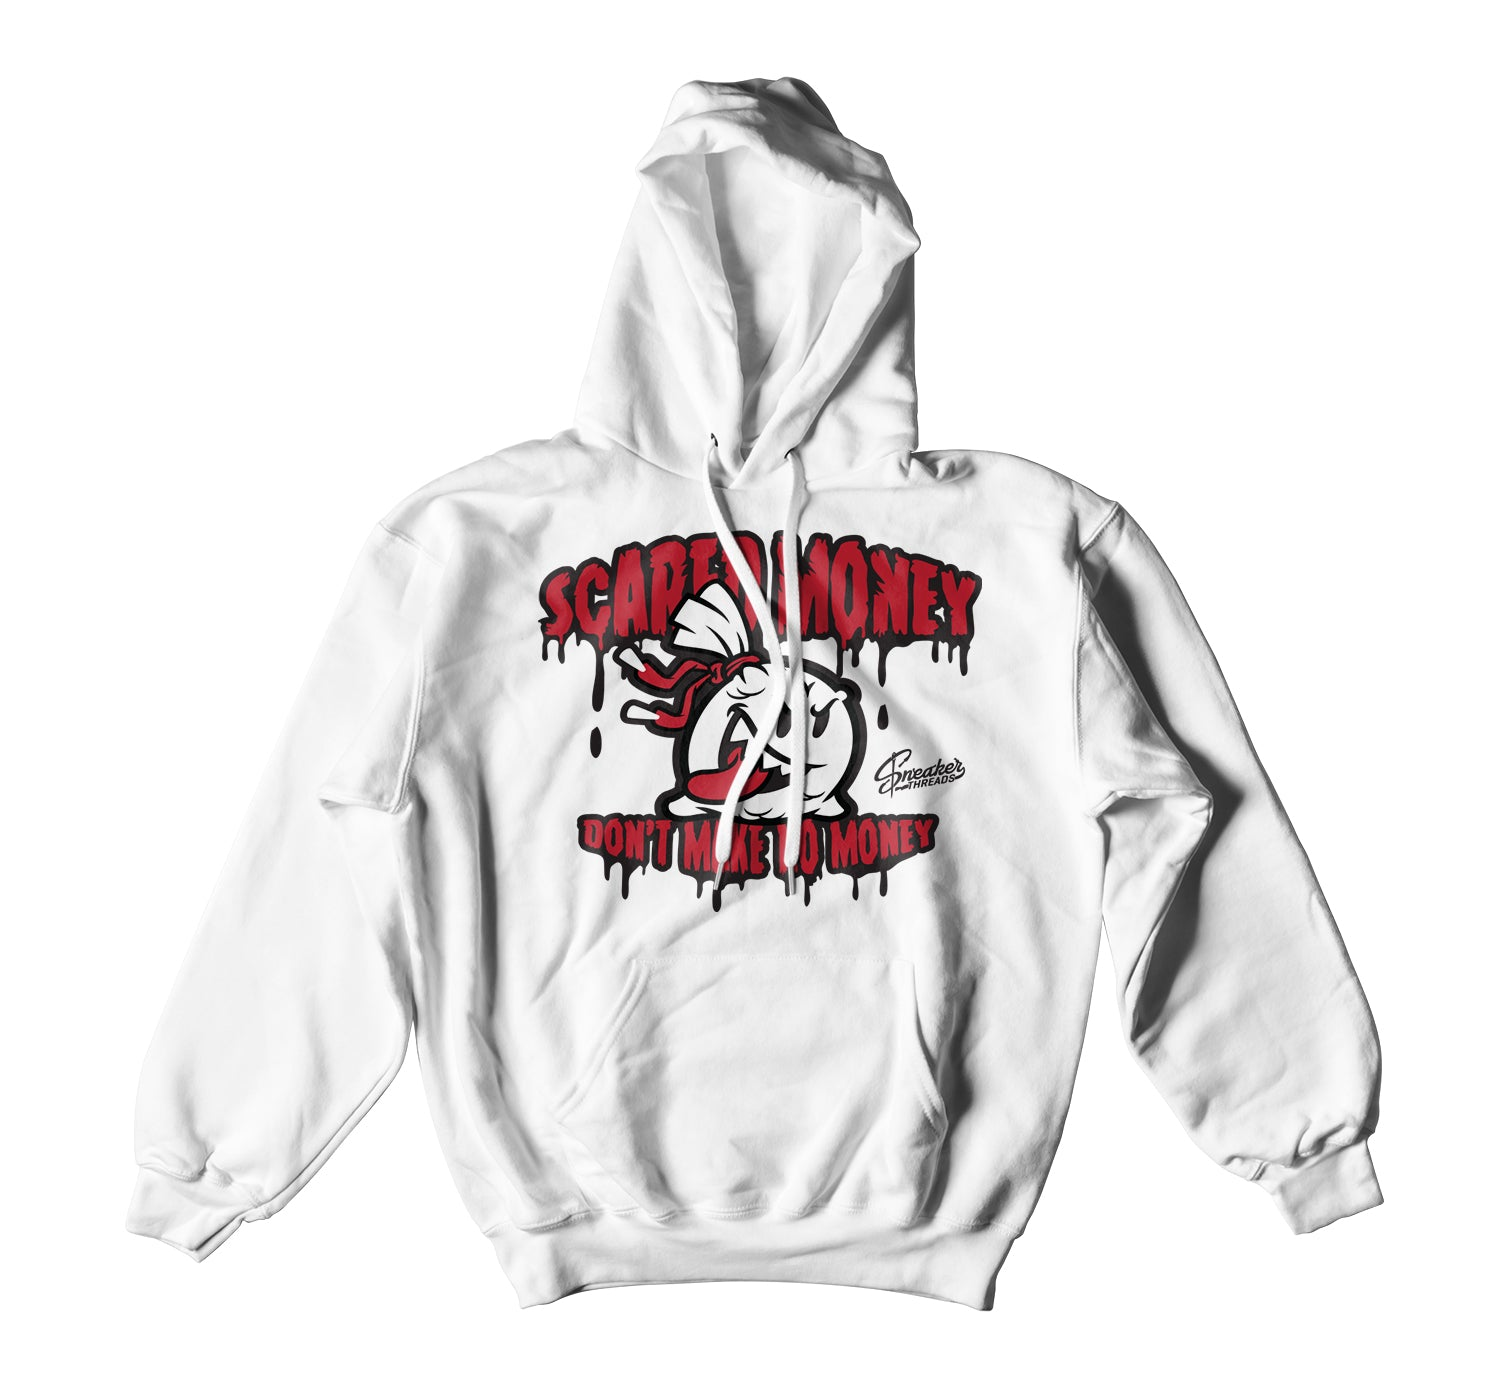 Jordan 9 Gym Red Hoody- Scared Money - White